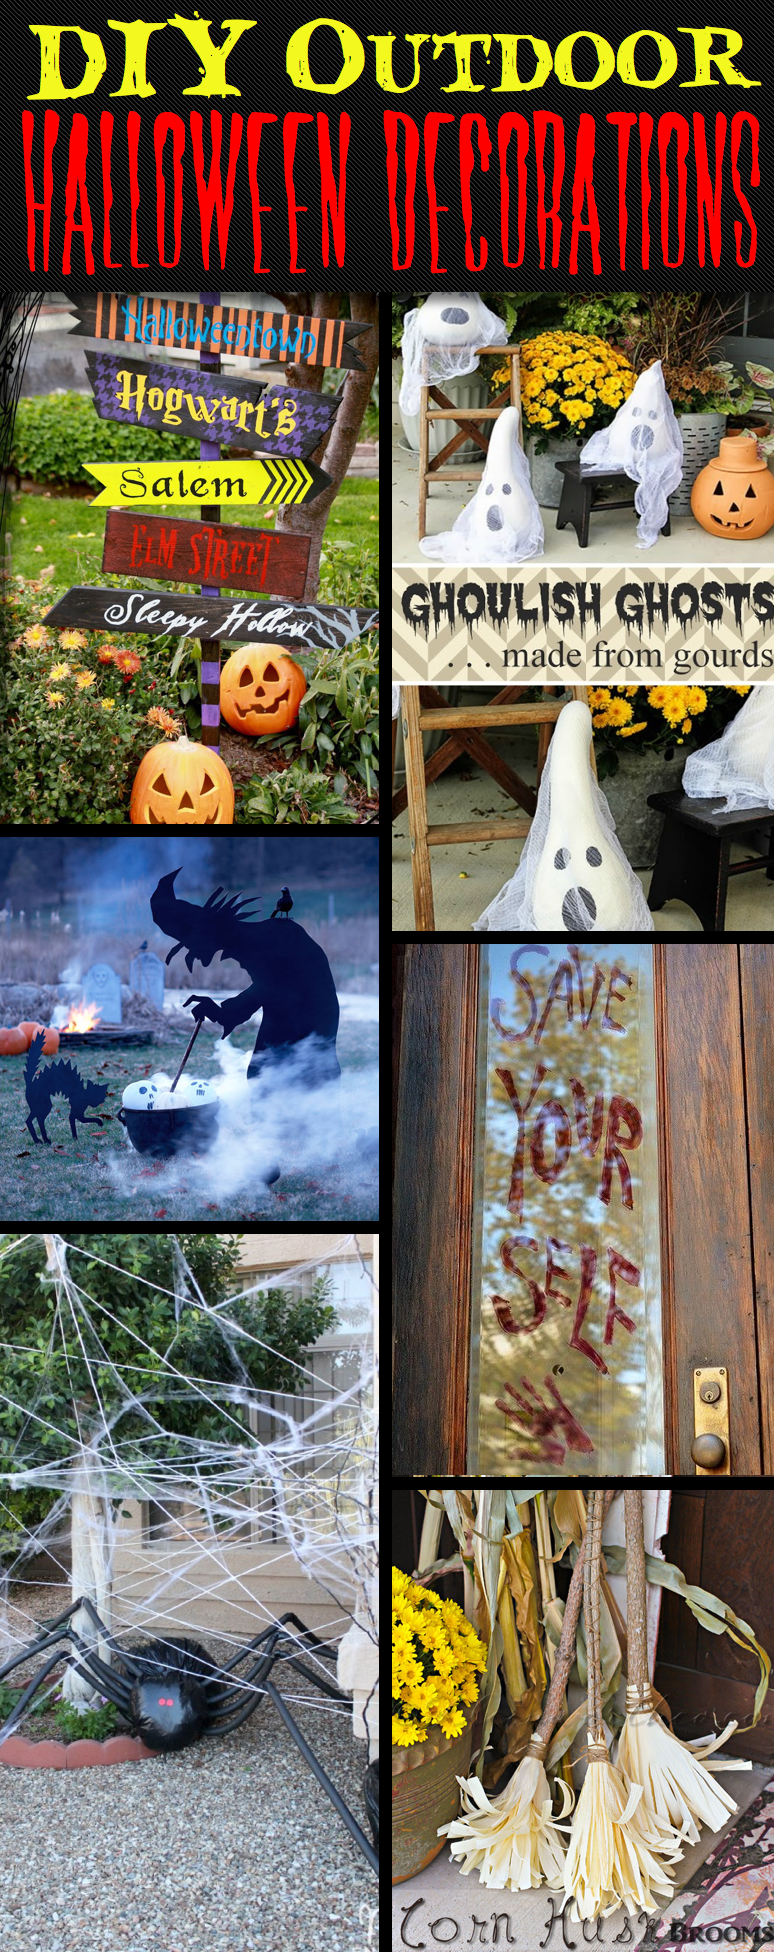 50 easy diy outdoor halloween decoration ideas for 2017 125 cool outdoor halloween decorating ideas digsdigs